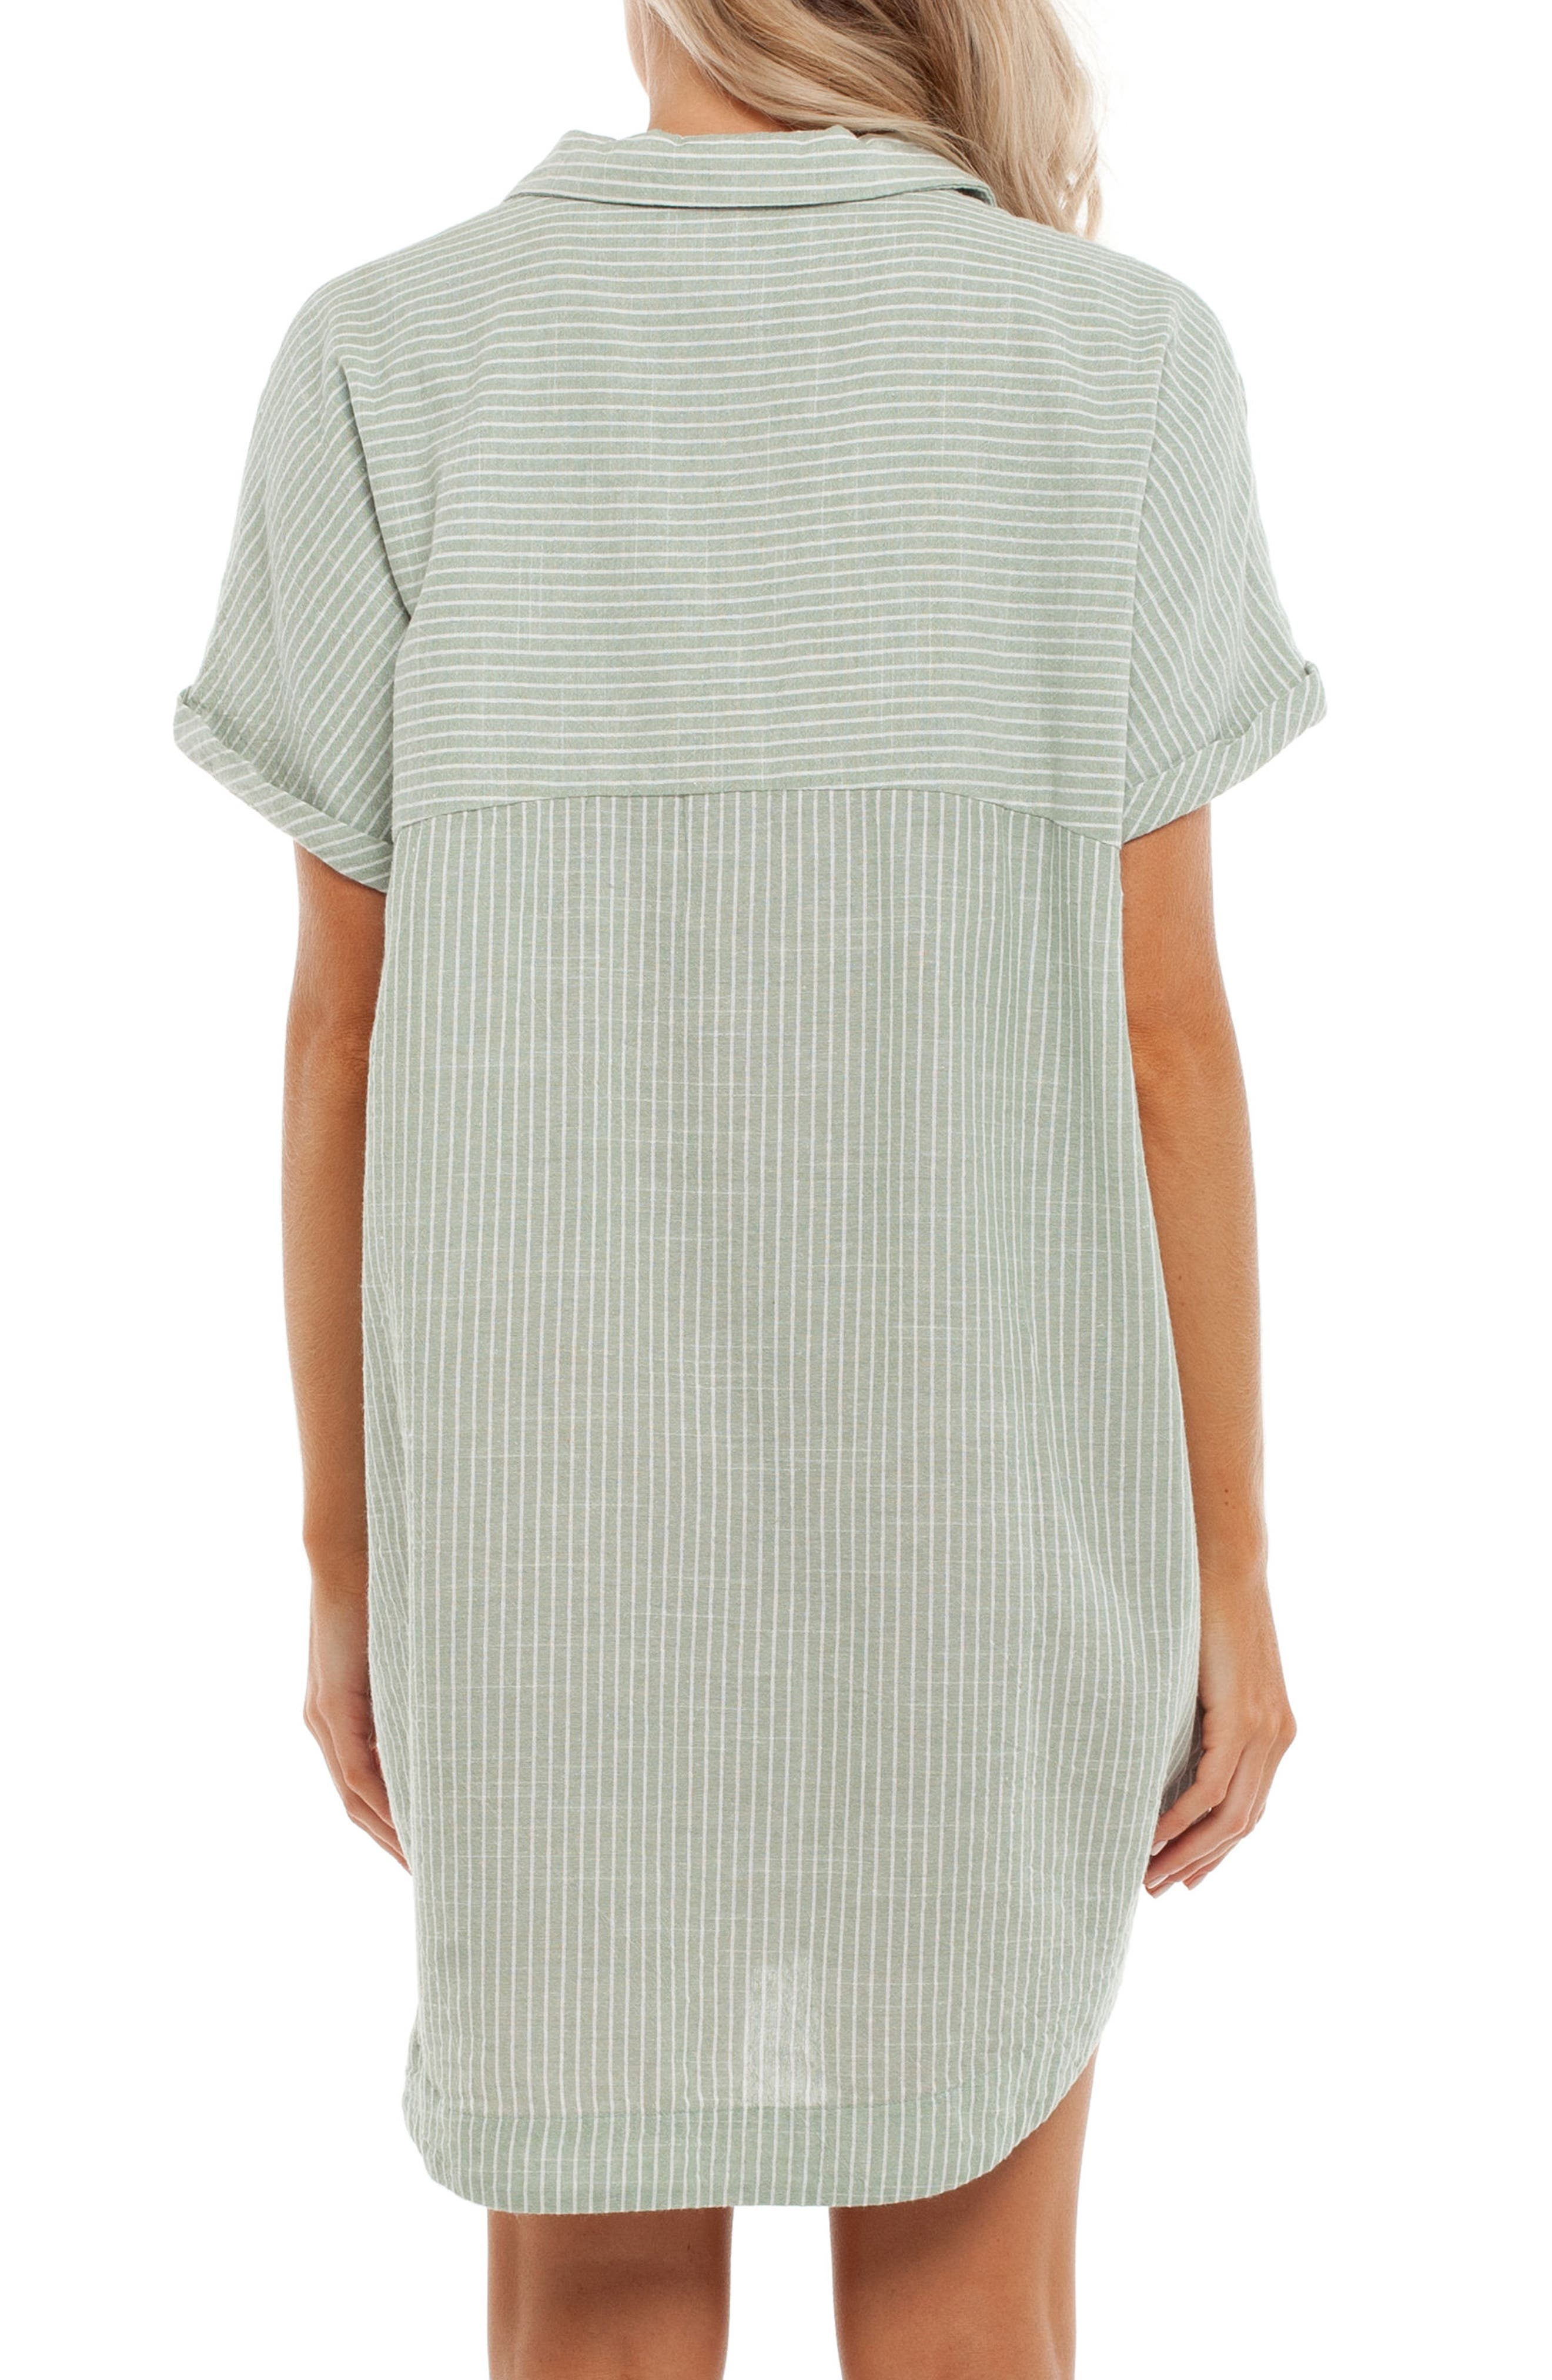 Seaside Cover-Up Dress,                             Alternate thumbnail 2, color,                             Palm